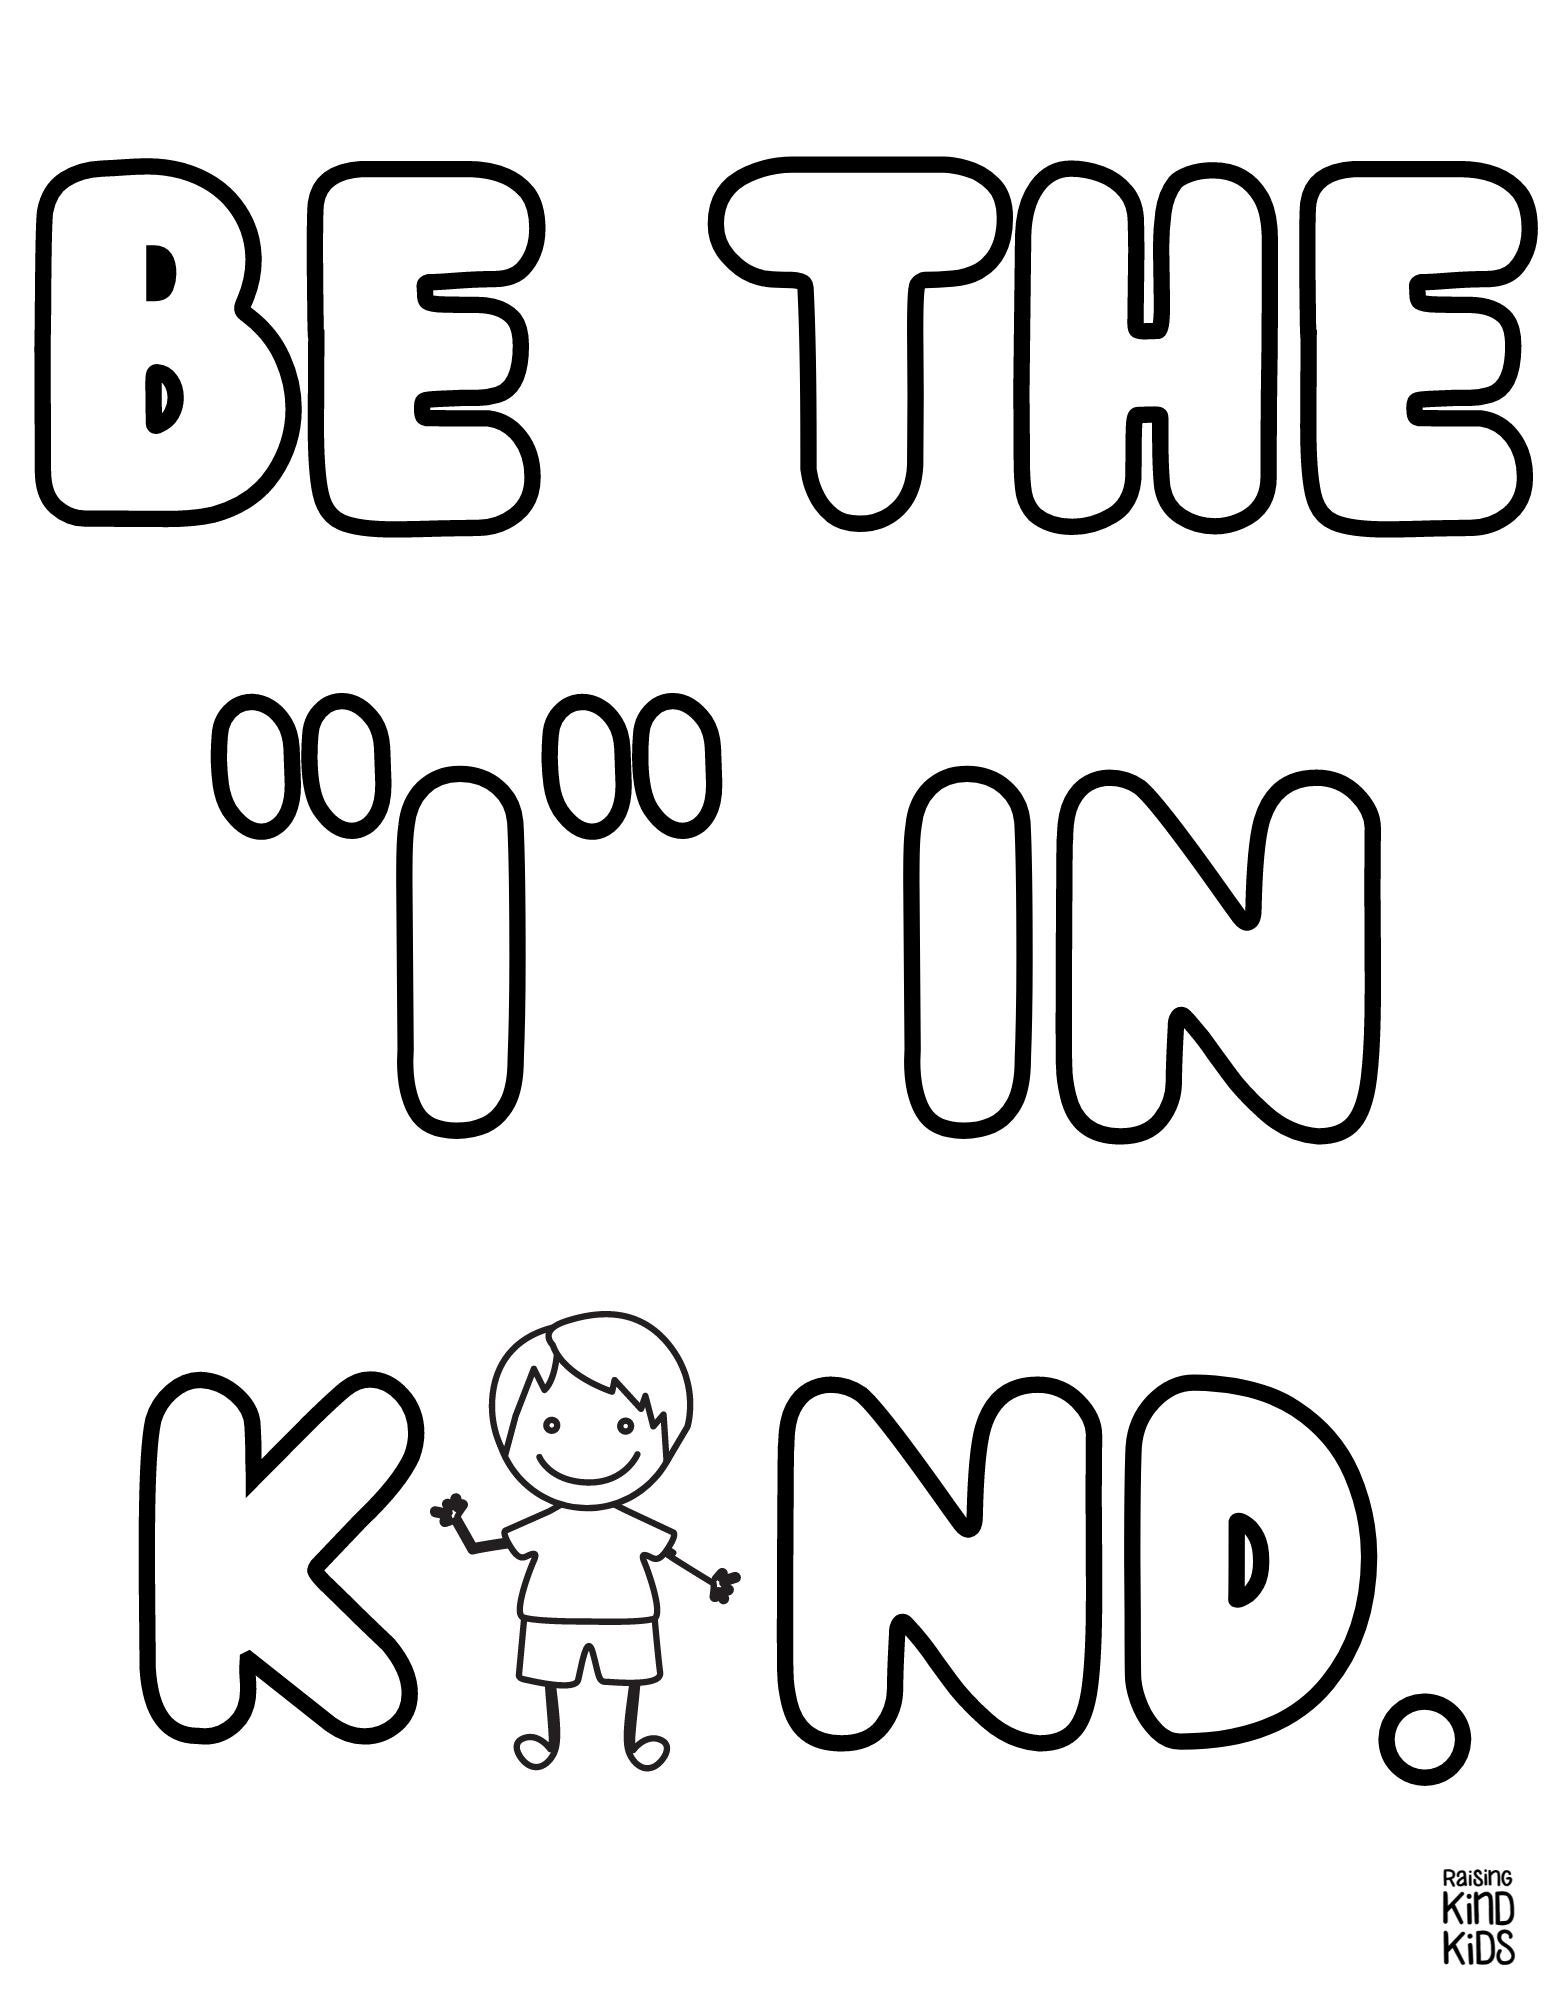 Use these kindness coloring pages to encourage more kindness with kids.